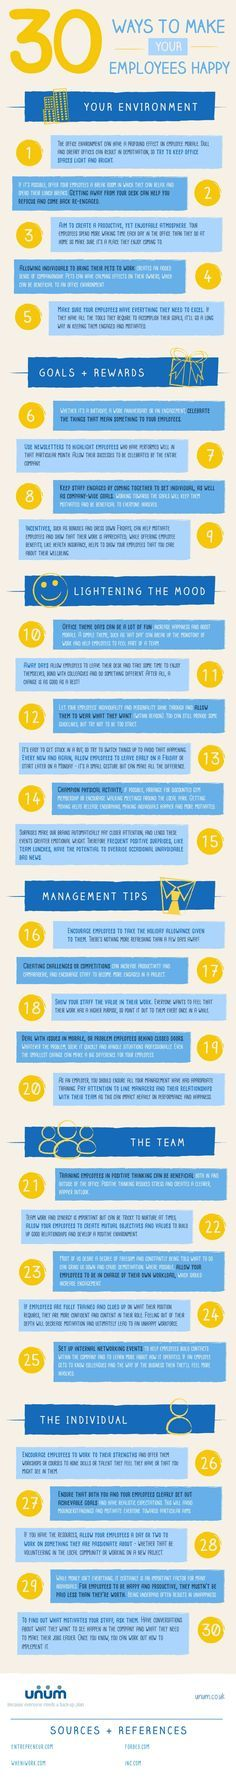 Thanks @unumuk for sharing these 30 simple ways to make your employers happier. Things like allowing individuals to bring pets to work, making sure they have the right tools, offering incentives like bonuses and dress down Fridays, and more. See more in this infographic and on our other Pinterest boards now!